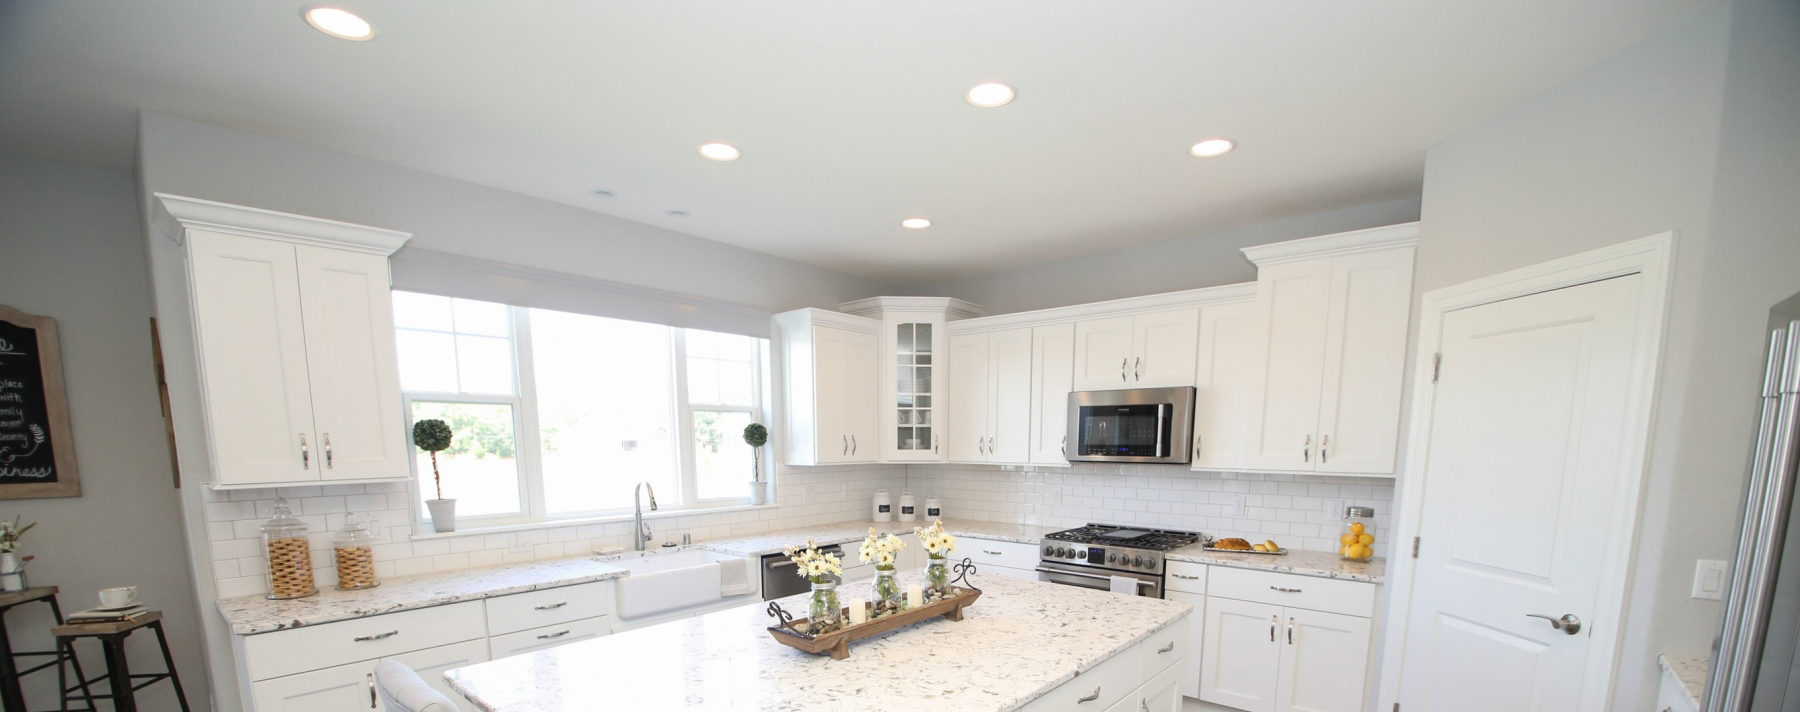 Cabinets Plus Kitchen Cabinets In Detroit Lakes Mn